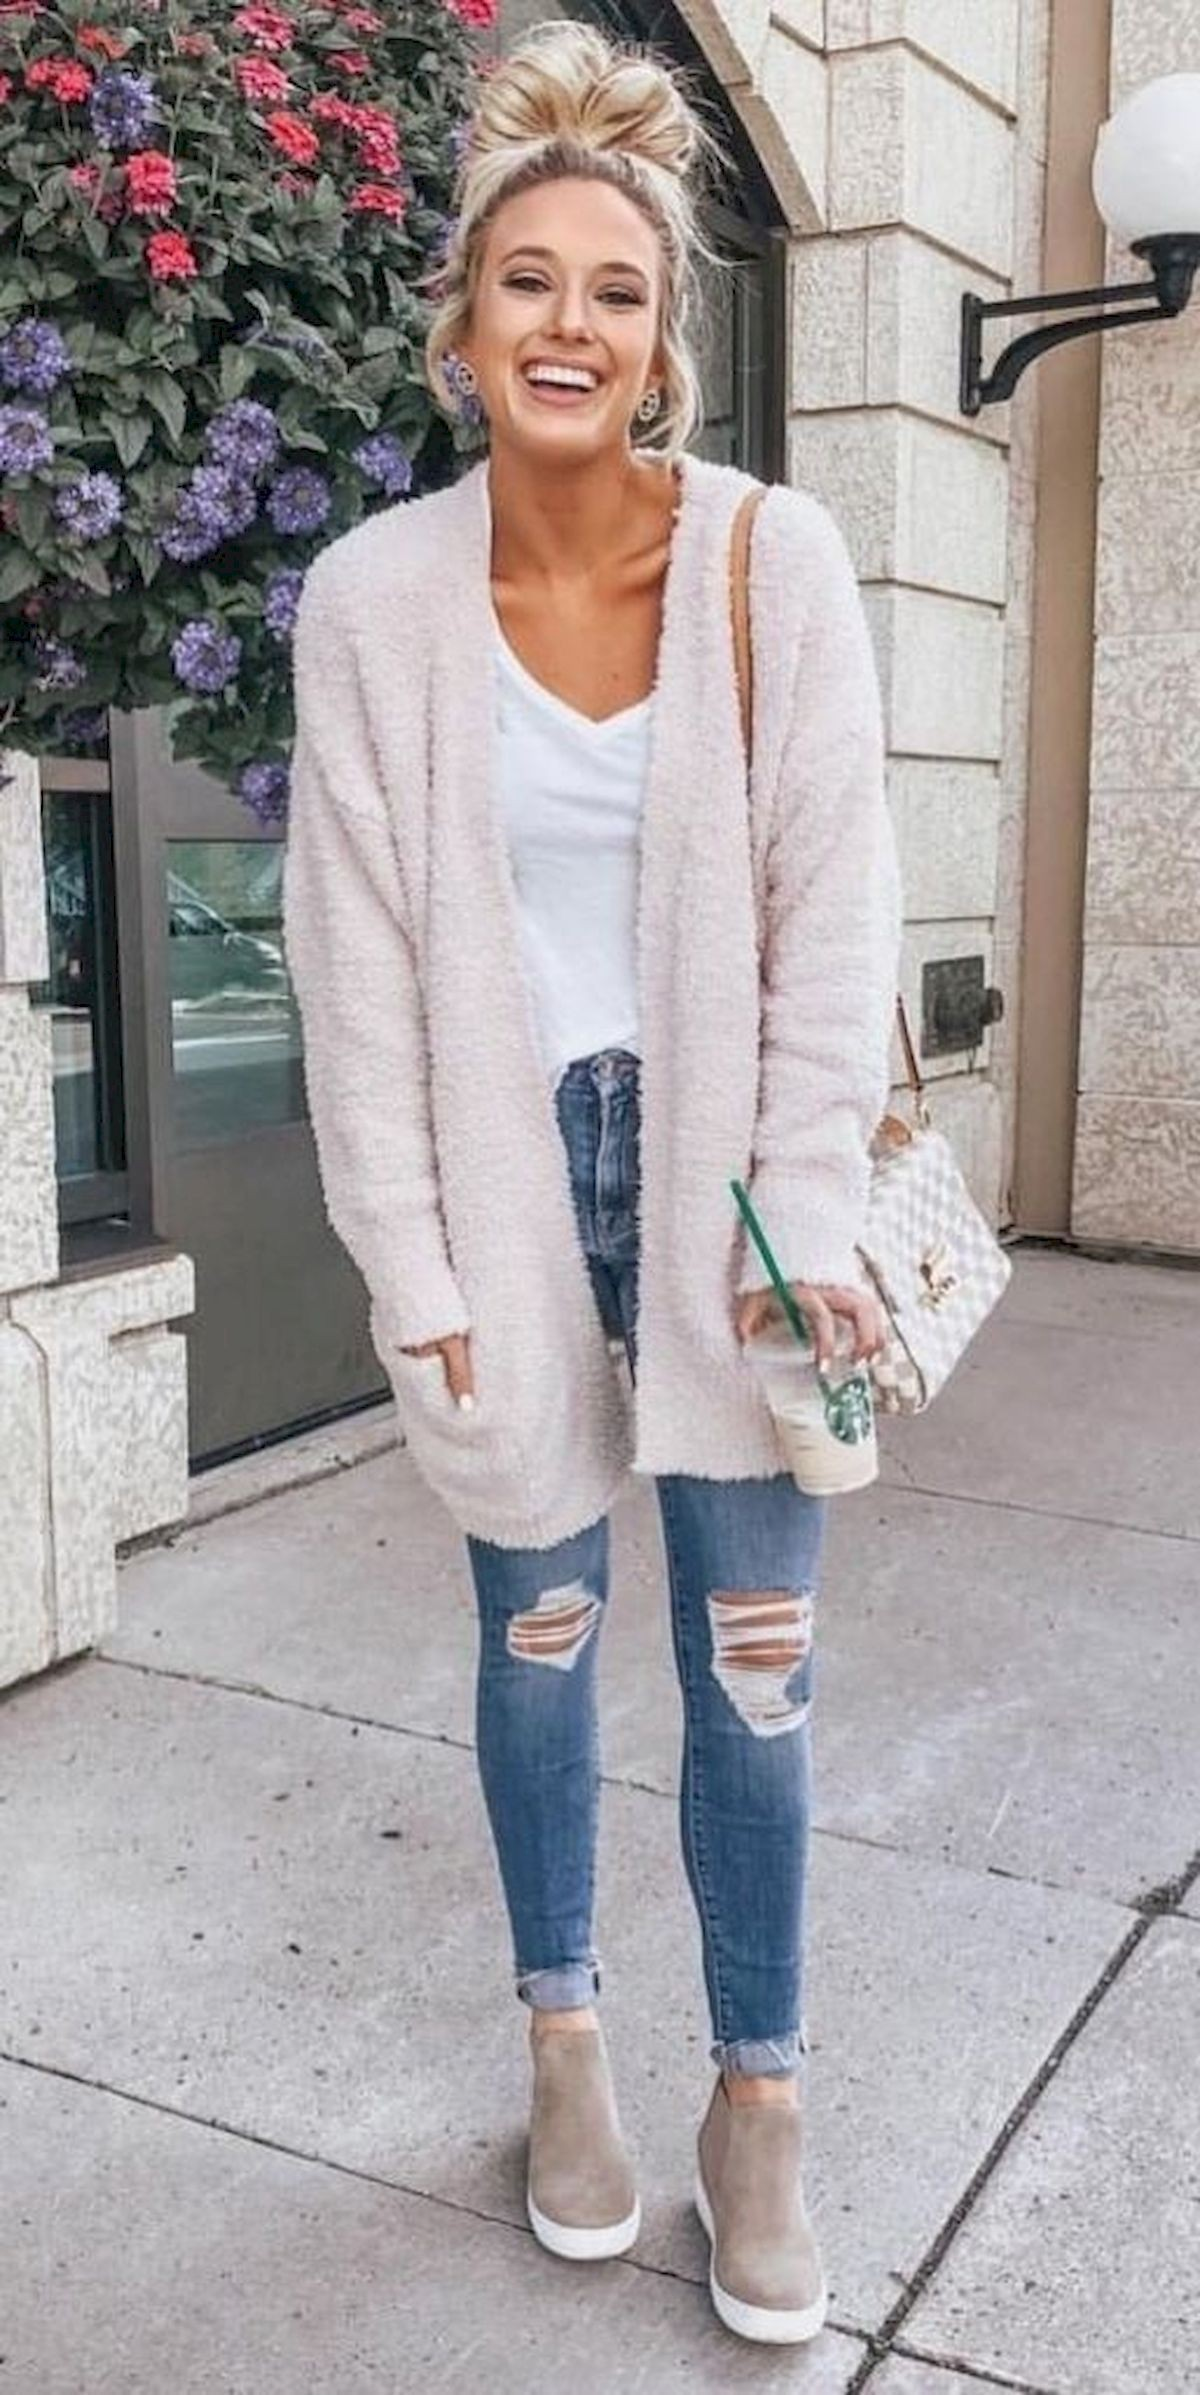 white outfits for women with sweater, jeans, top